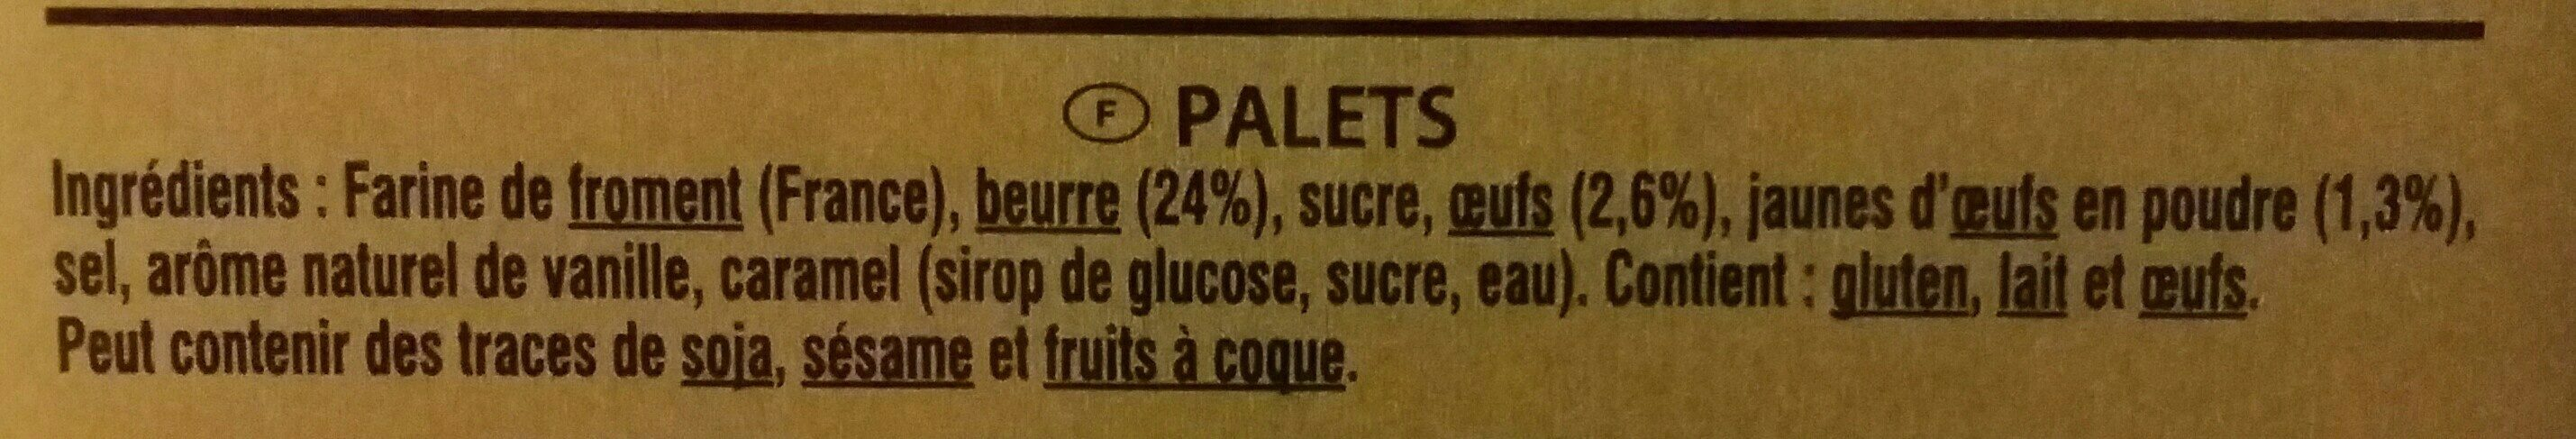 Palets Pur Beurre - Ingredients